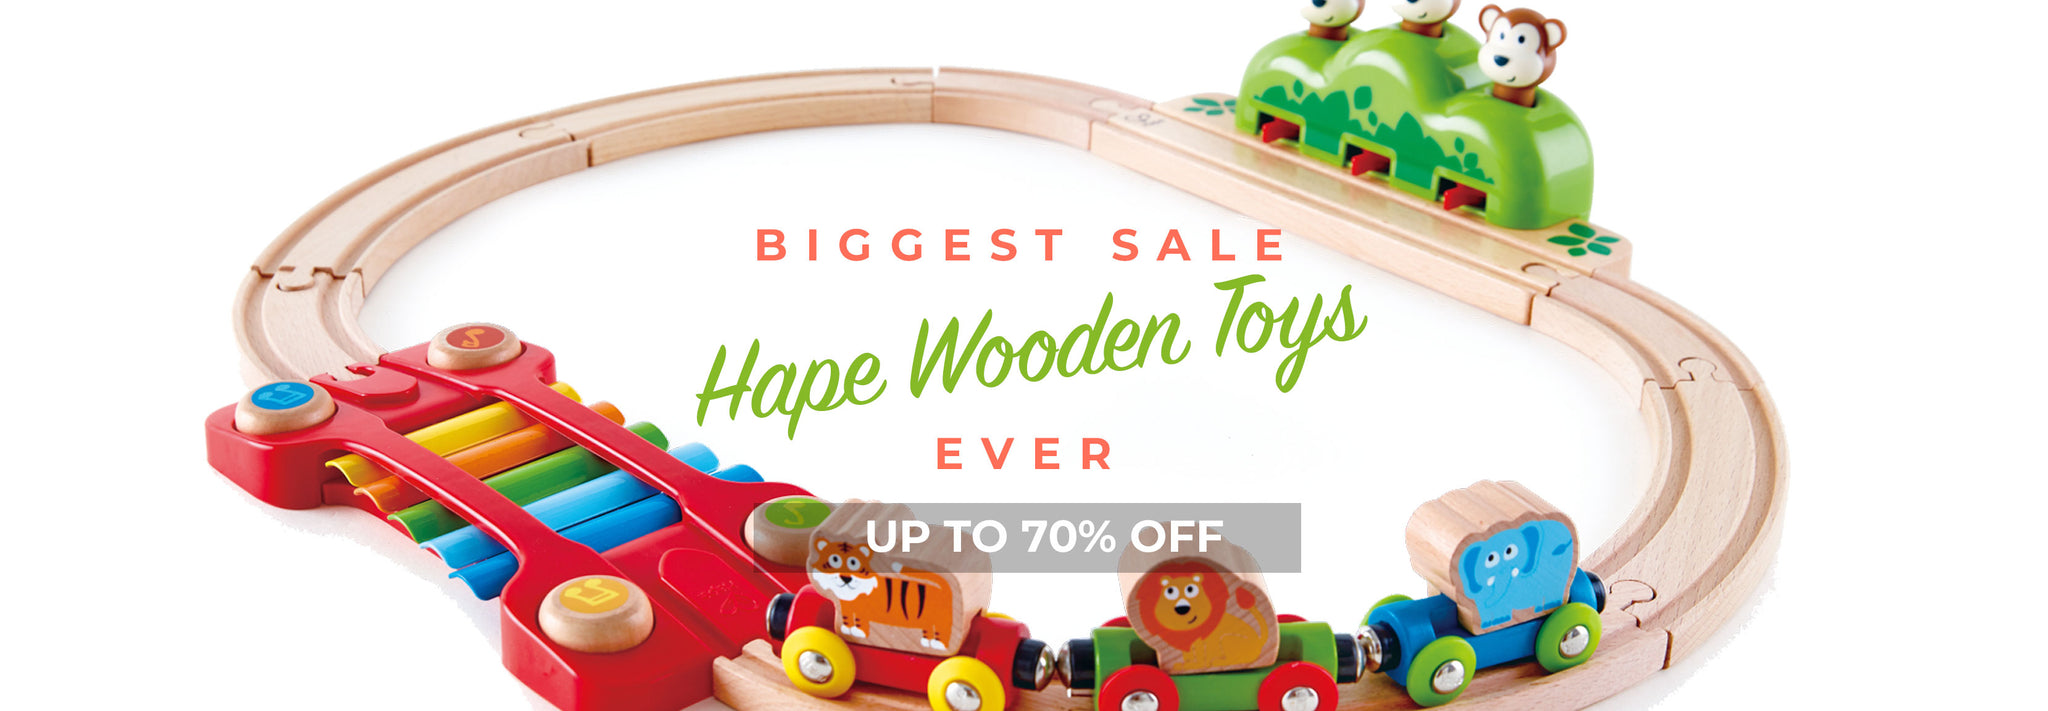 buy kids toys online australia at kids toys warehouse australia